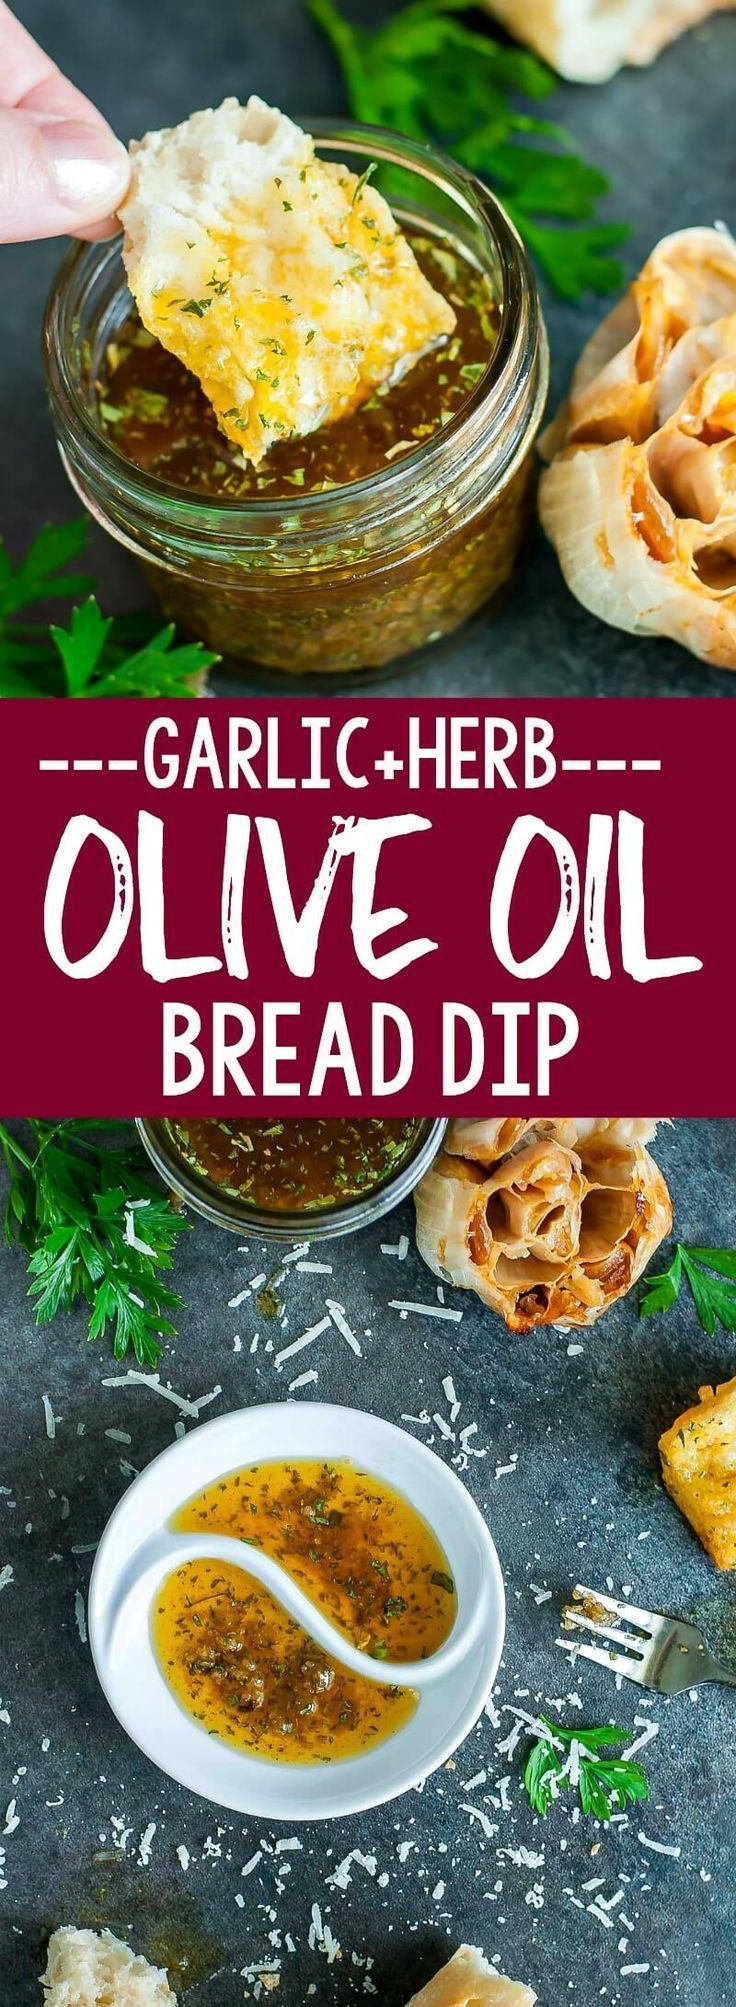 Restaurant-Style Olive Oil and Herb Bread Dip #oliveoils